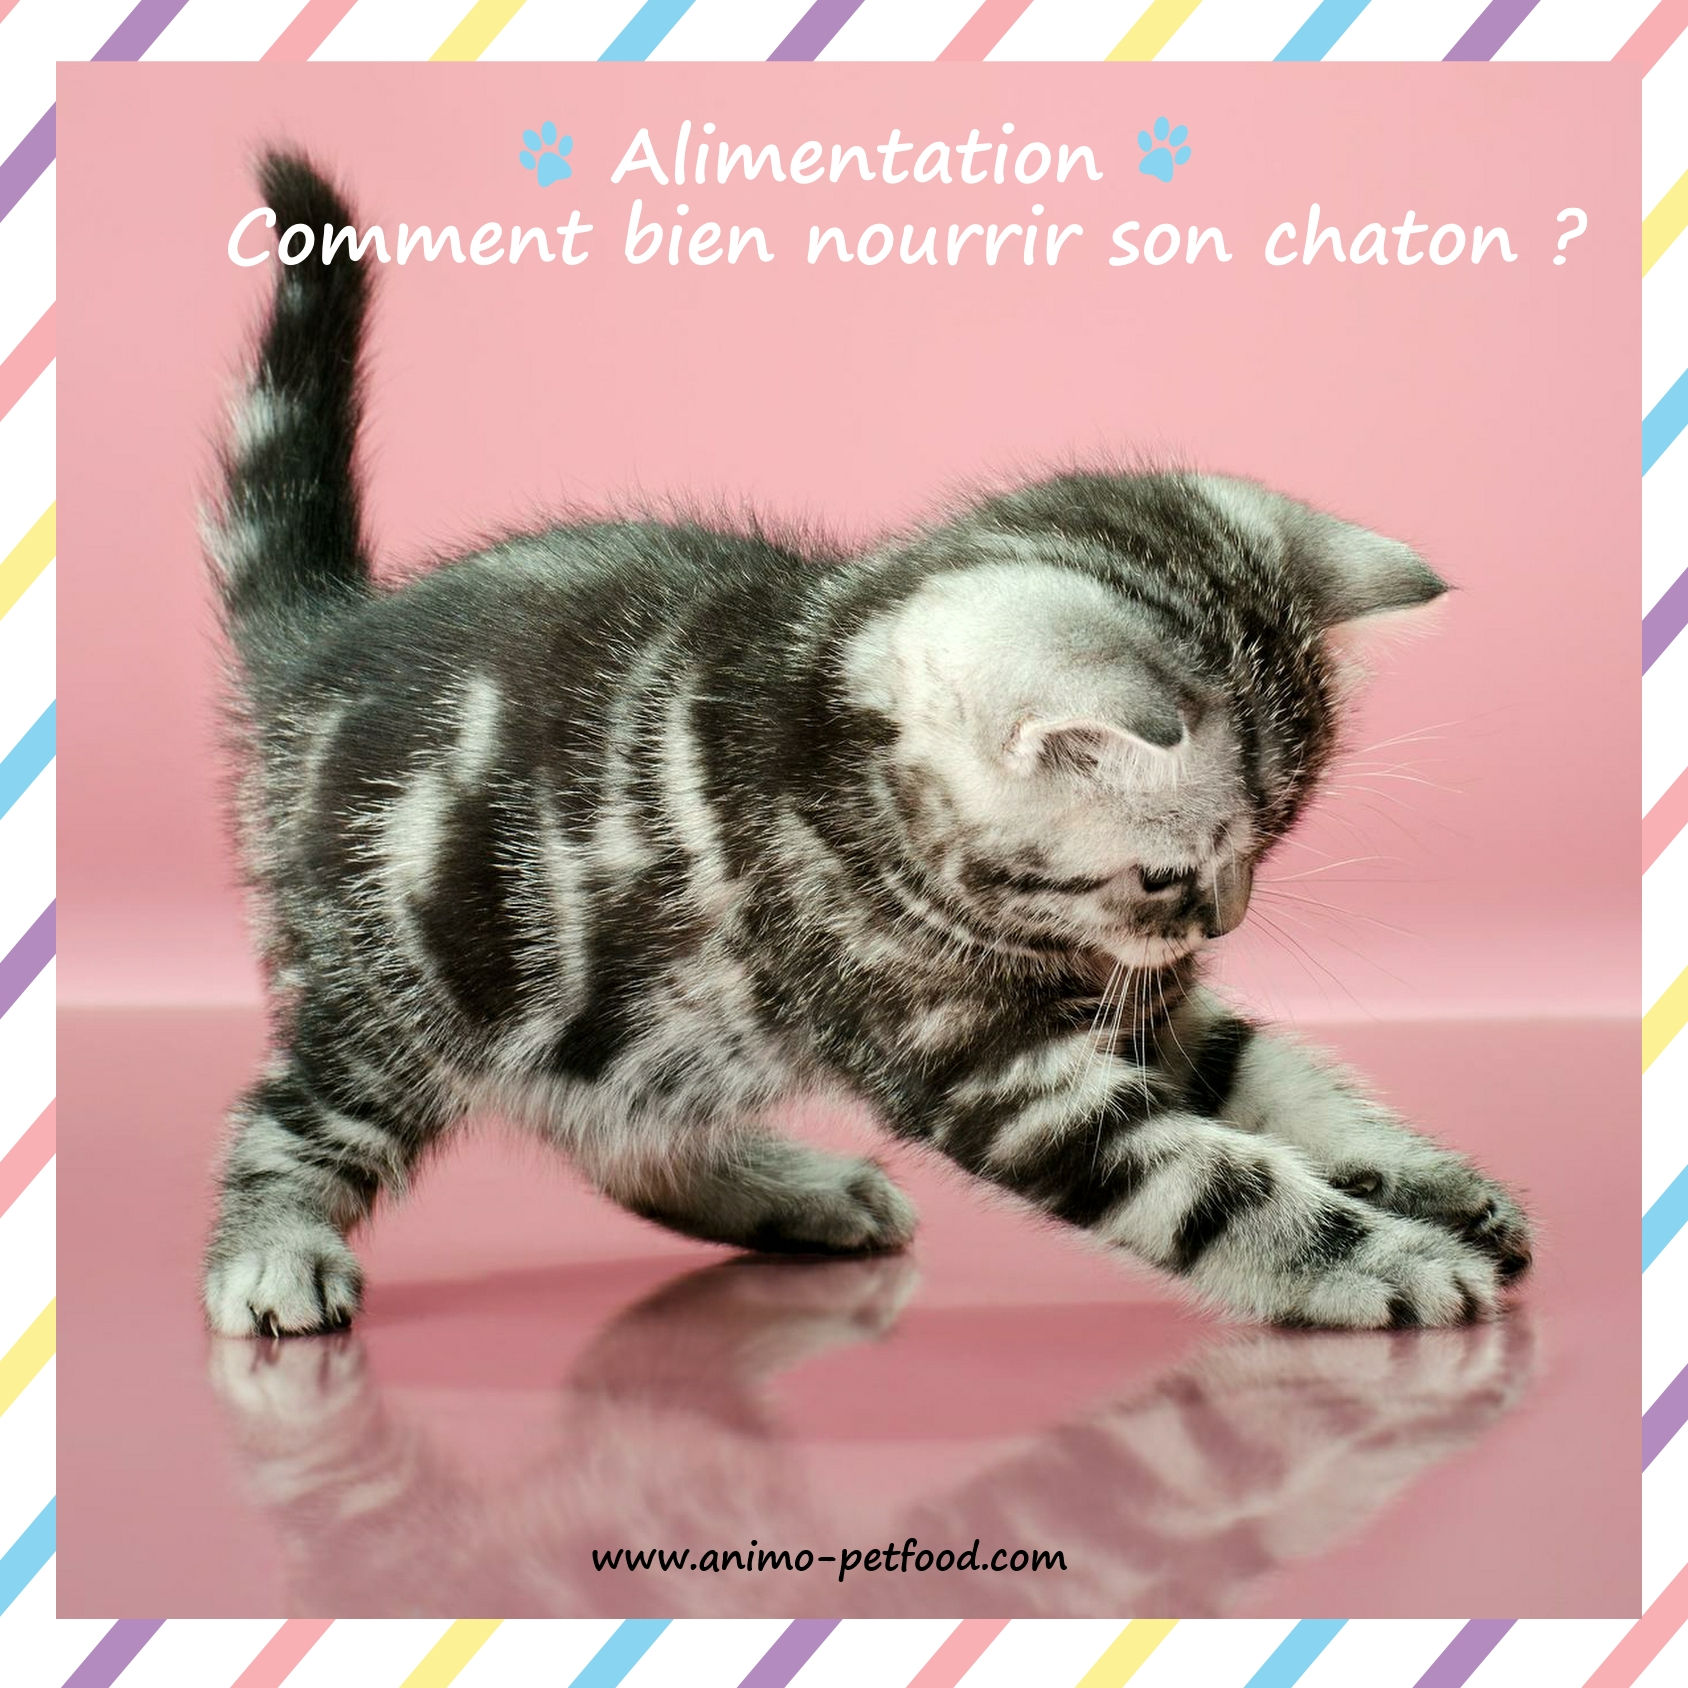 alimentation-comment bien nourrir son chaton